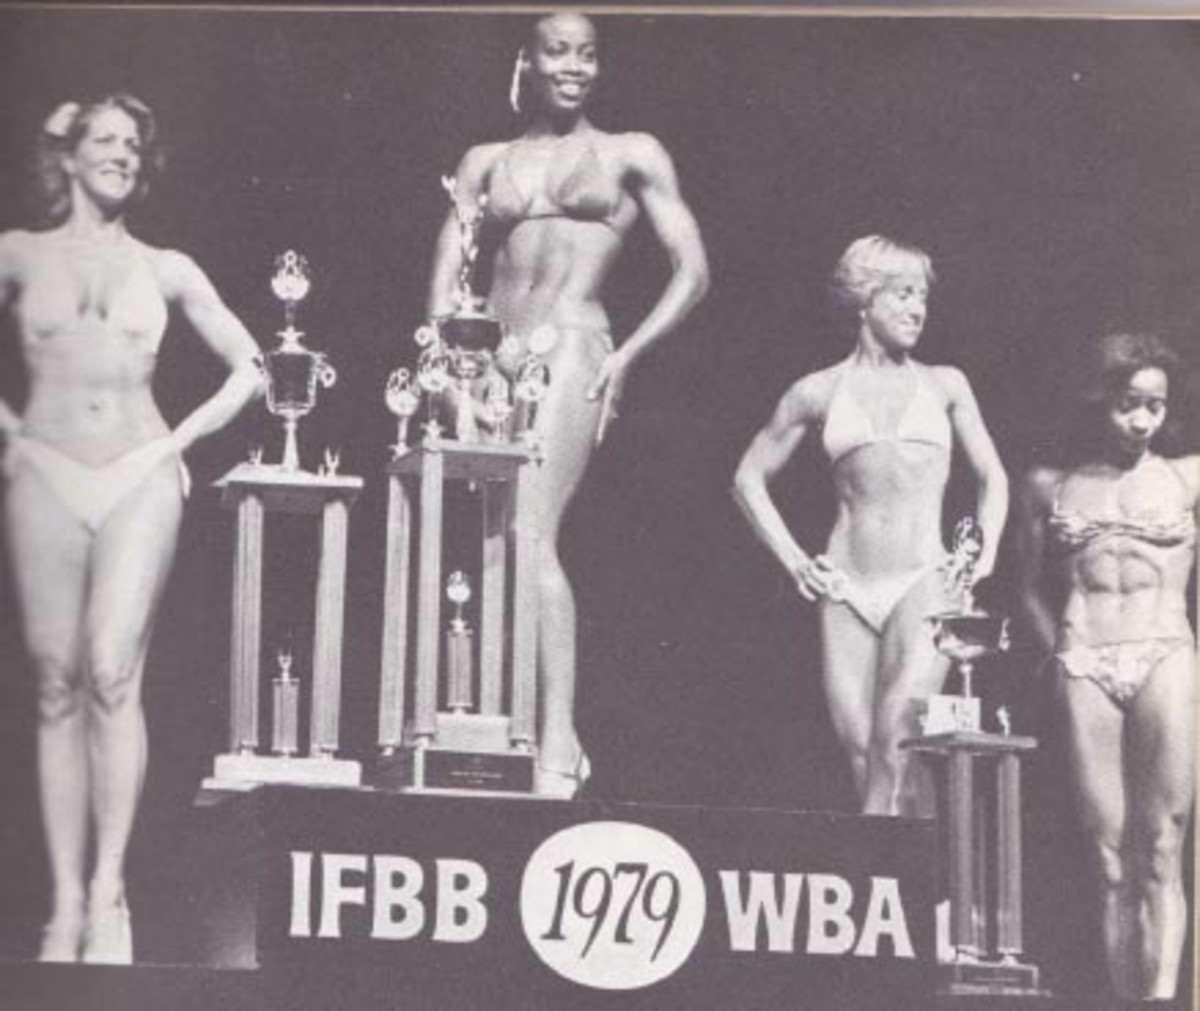 April Nicotra, Patsy Chapman, Stacey Bentley, and Carla Dunlap.